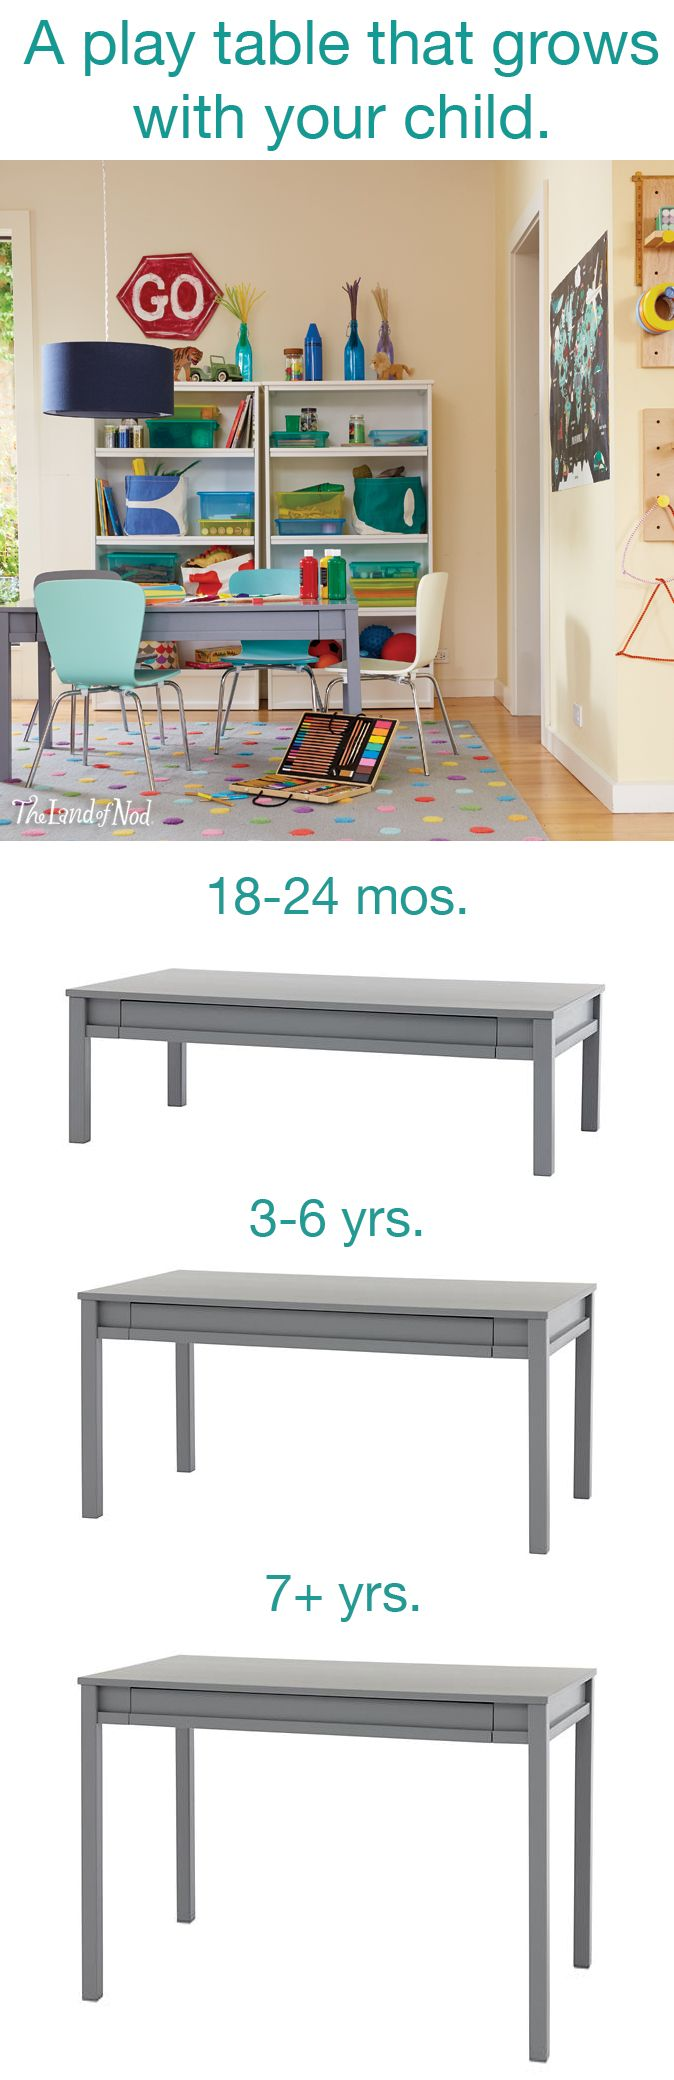 The land of nods exclusive extracurricular activity table is the land of nods exclusive extracurricular activity table is designed to grow as your child grows geotapseo Choice Image